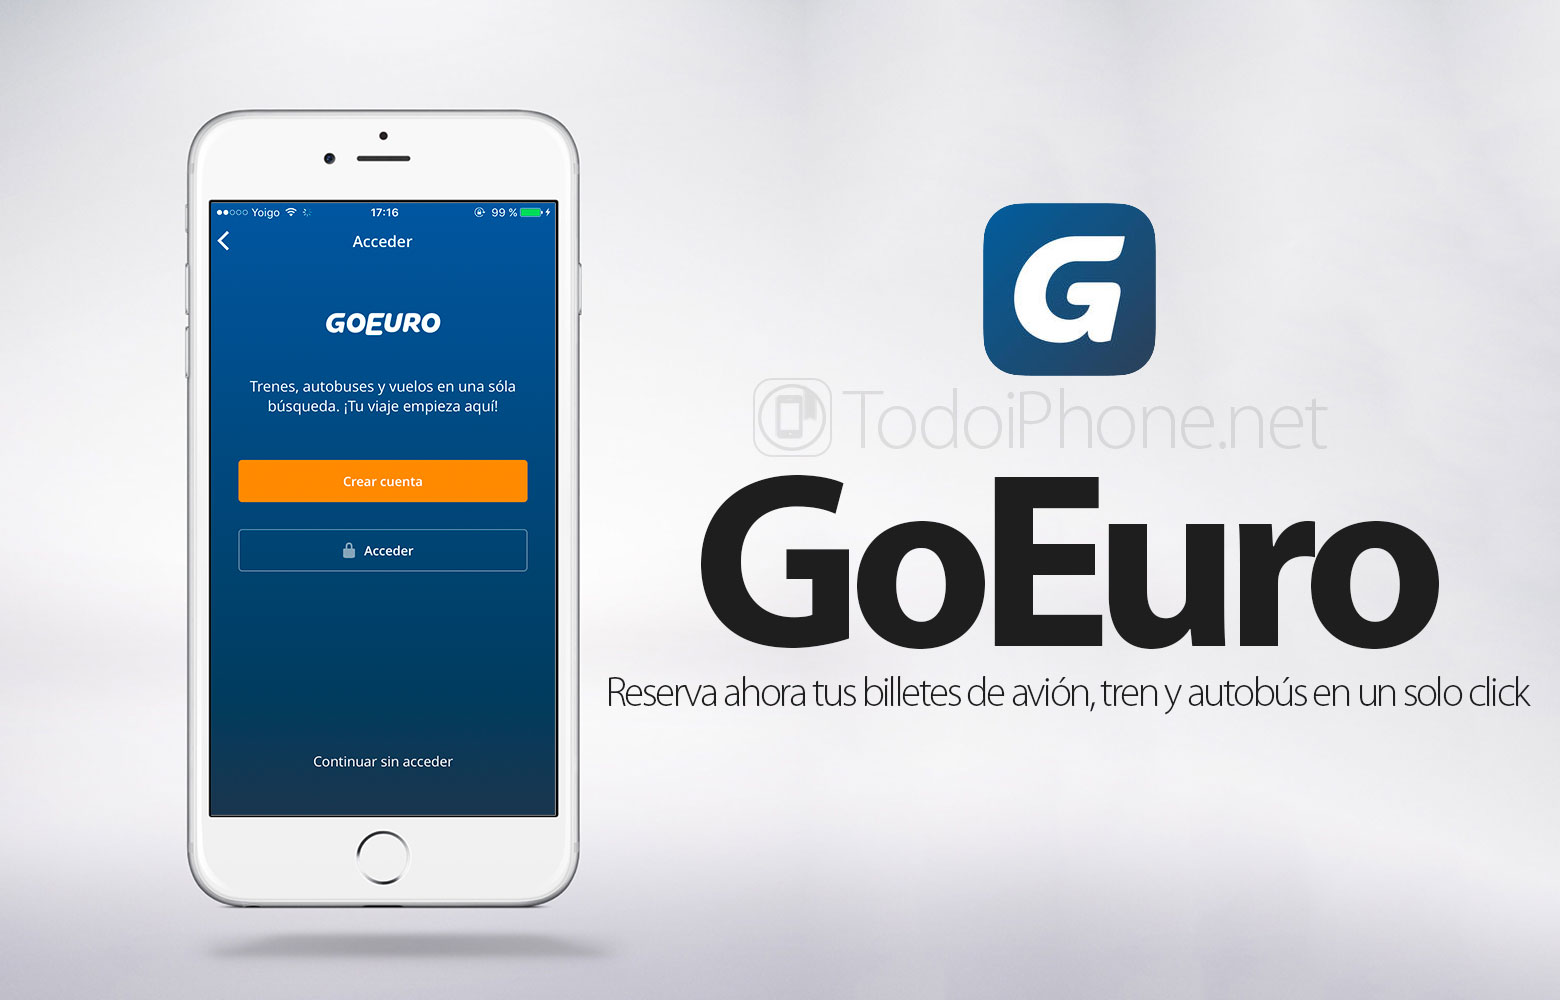 goeuro-iphone-reserva-avion-tren-autobus